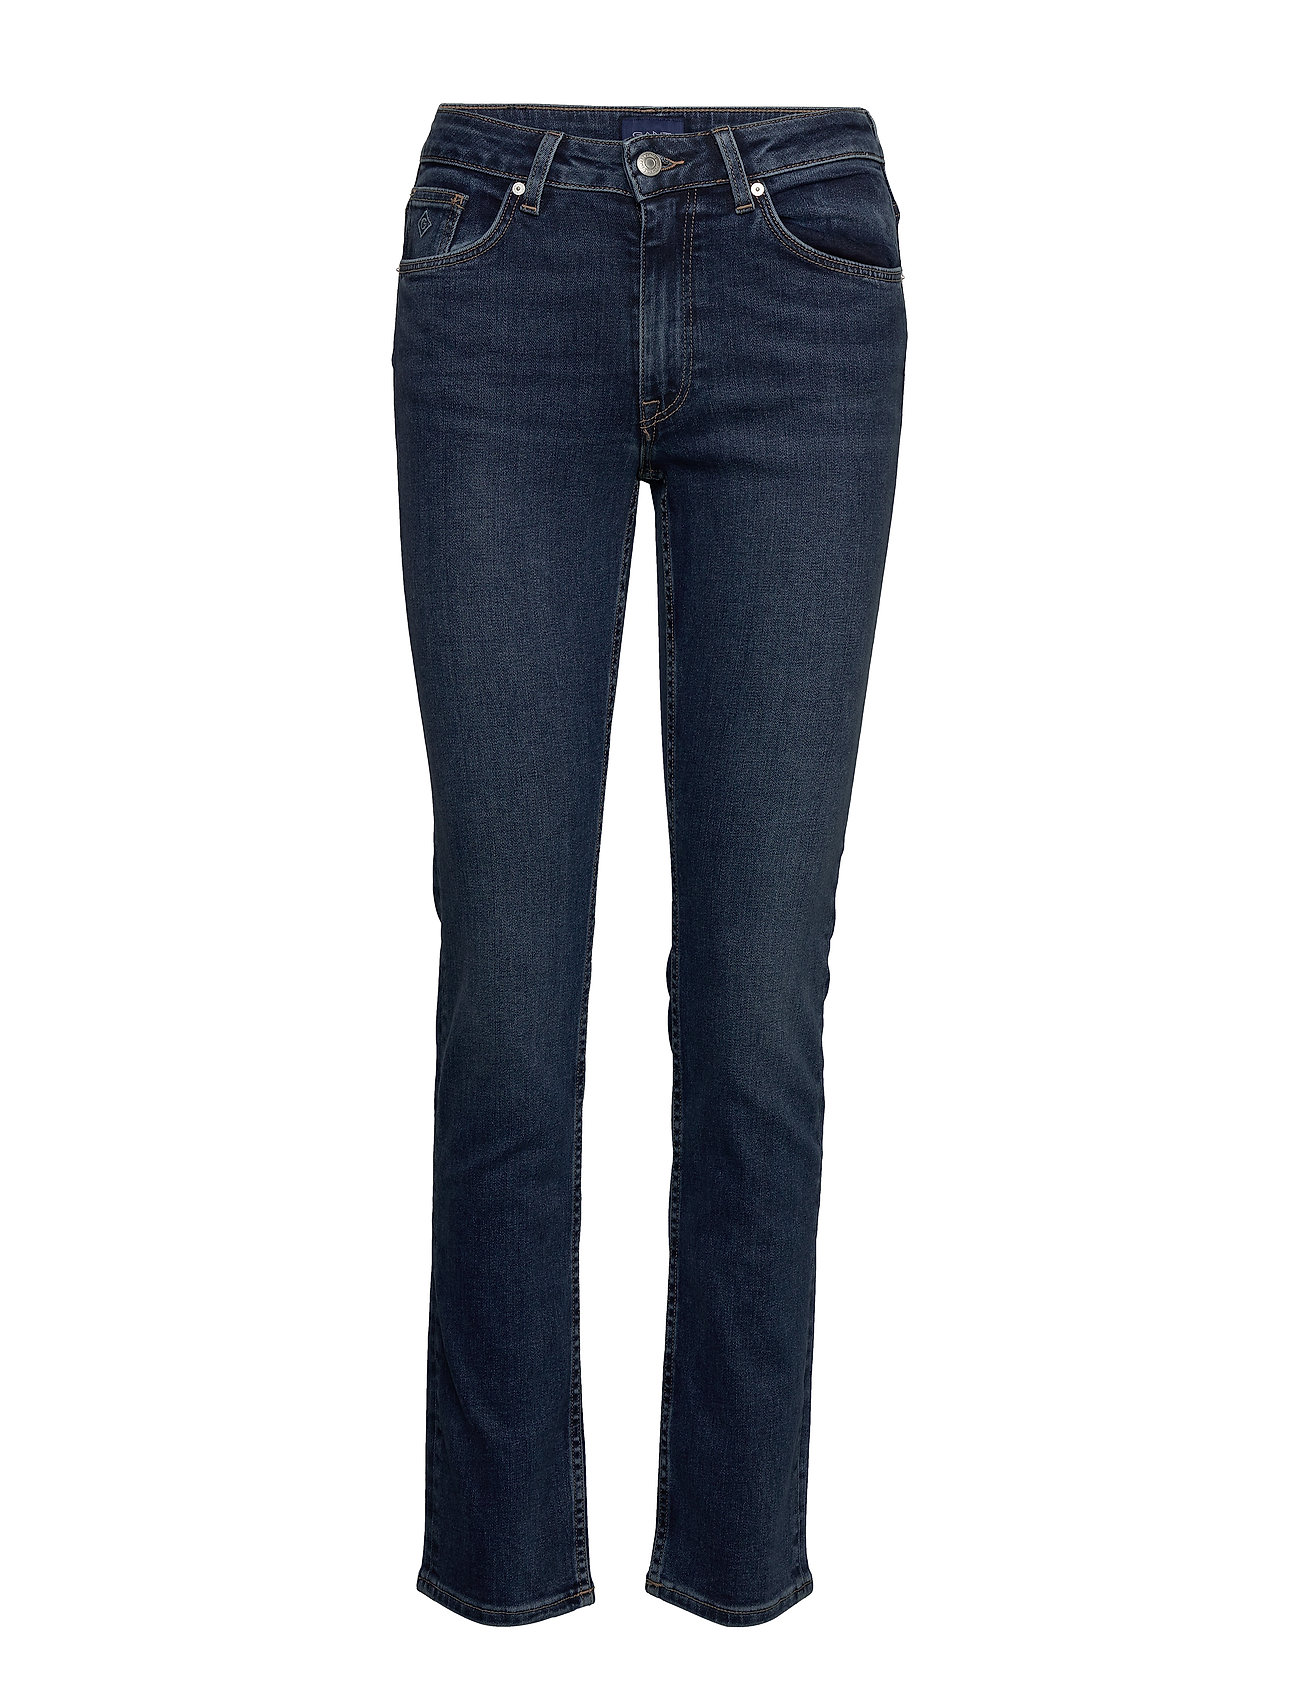 Gant SLIM SUPER STRETCH JEANS - DARK BLUE WORN IN